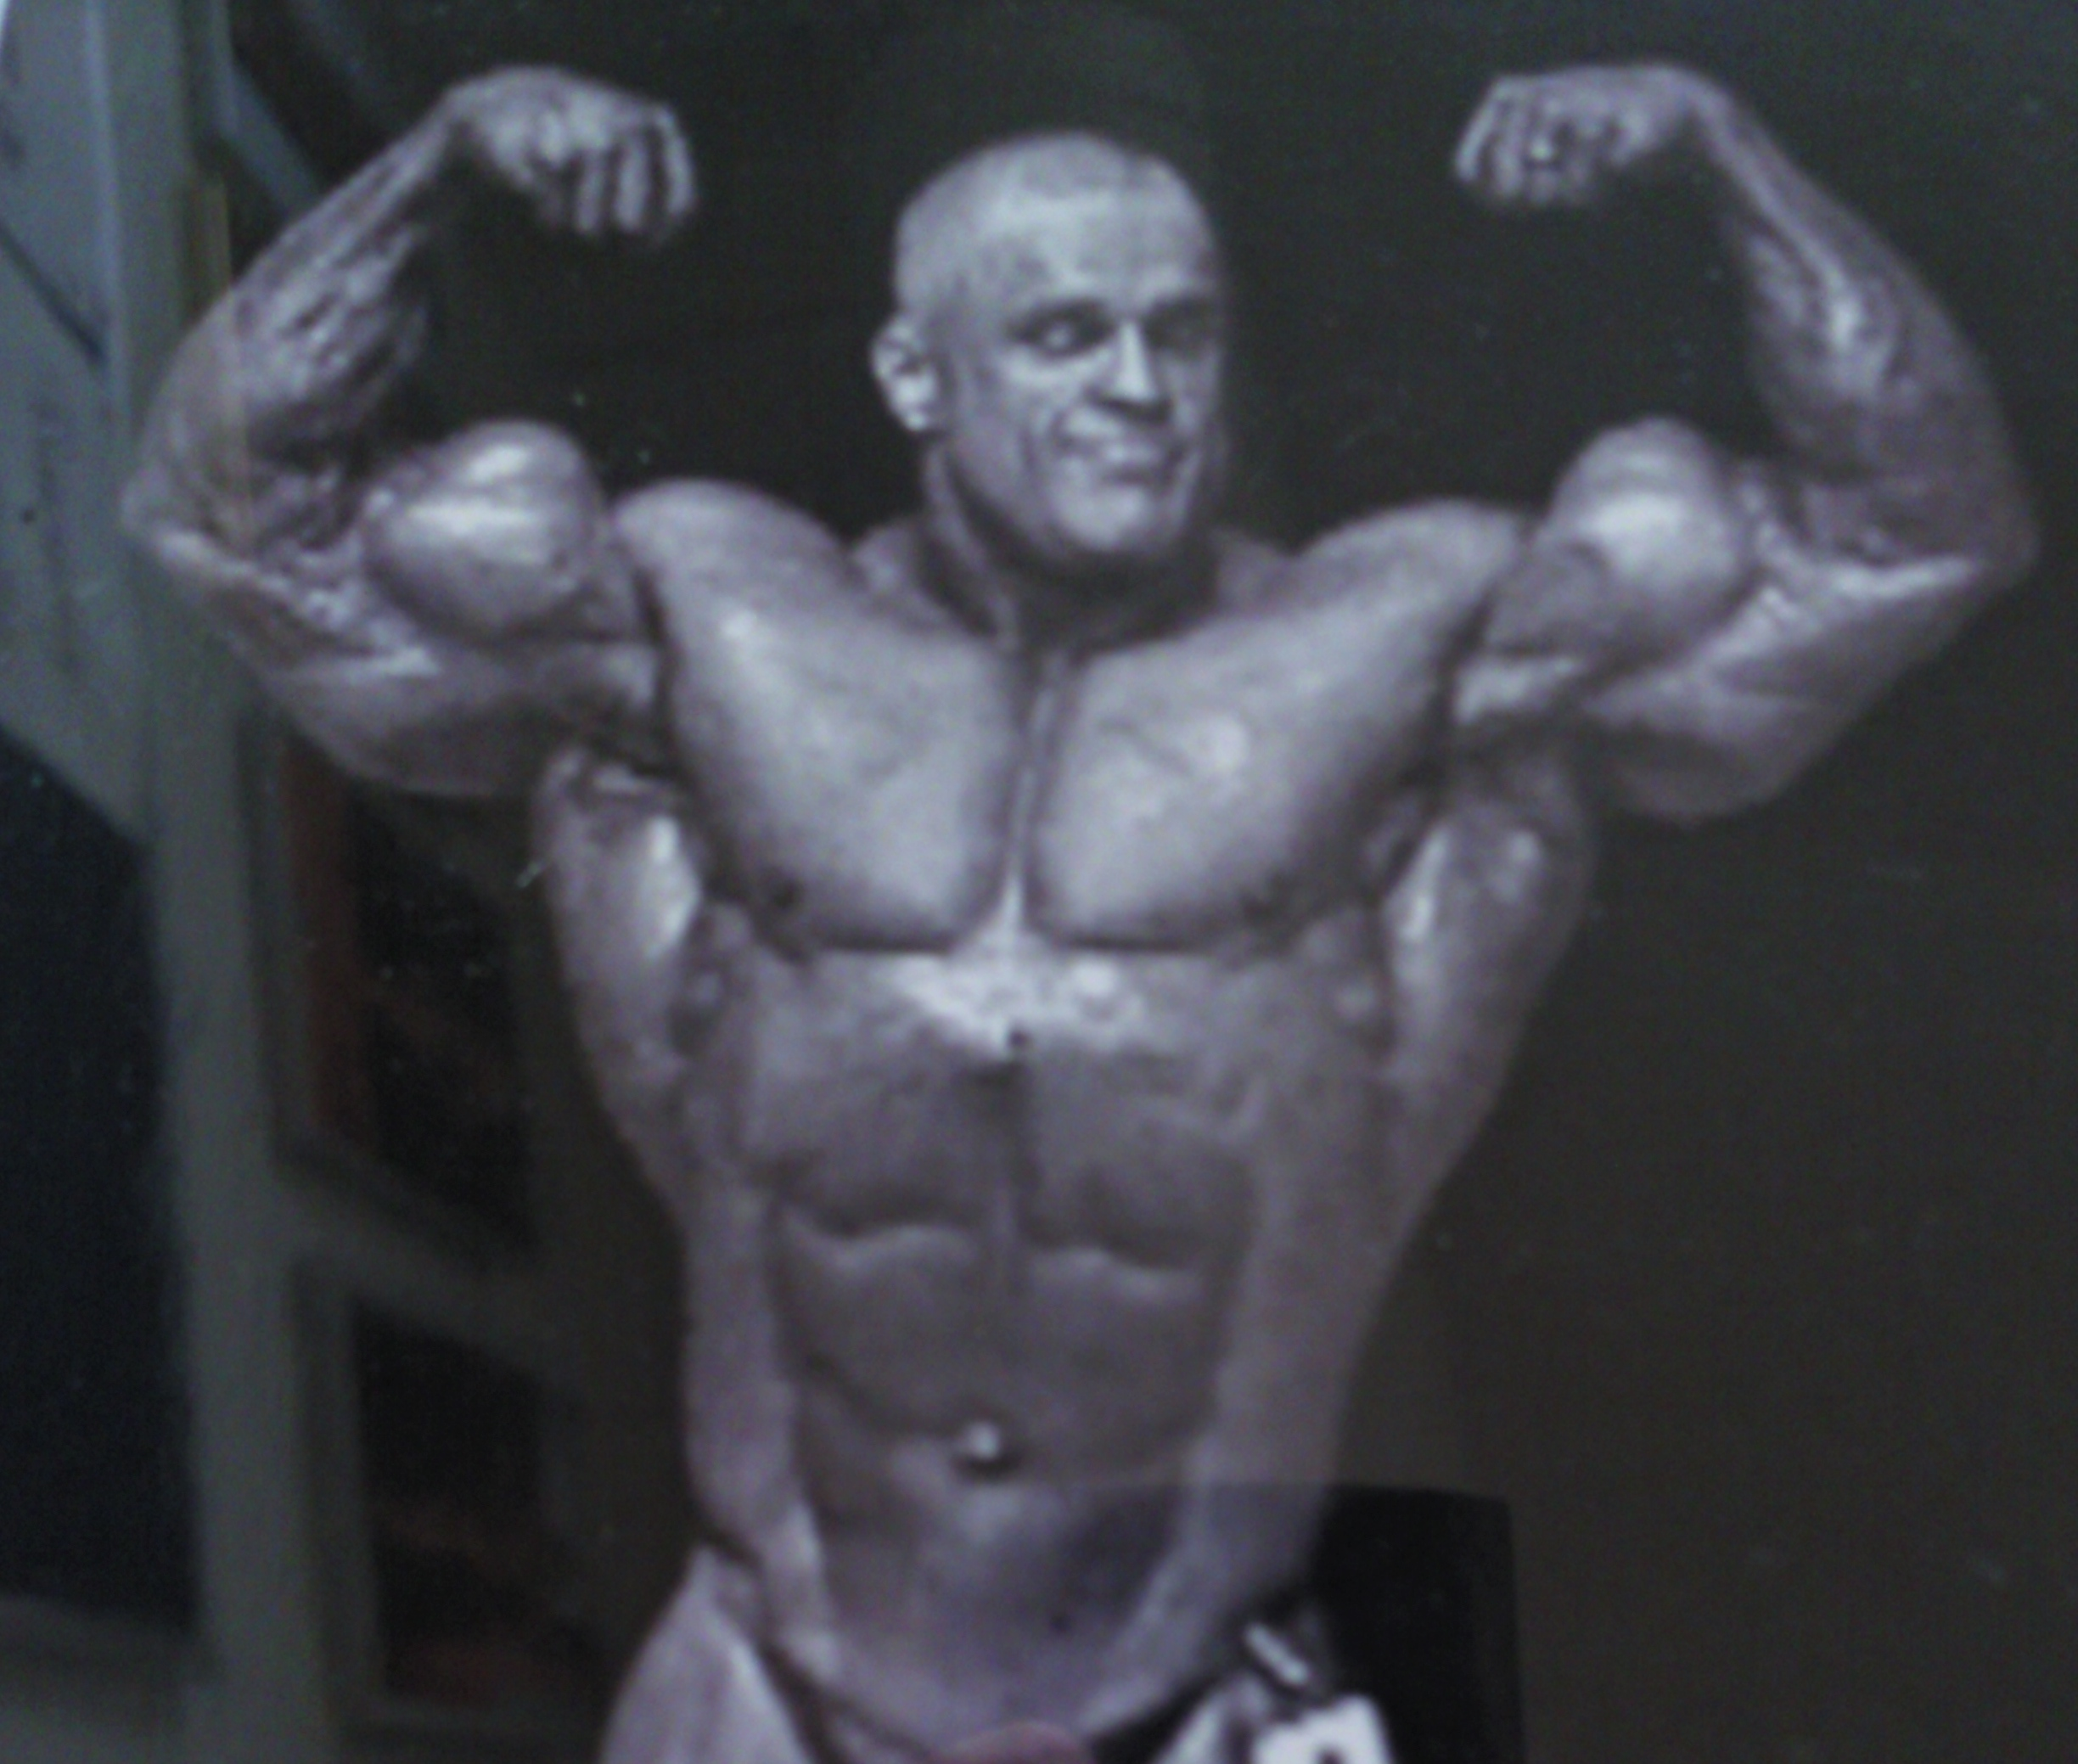 Biggest FBB in the World http://www.getbig.com/boards/index.php?topic=392103.0